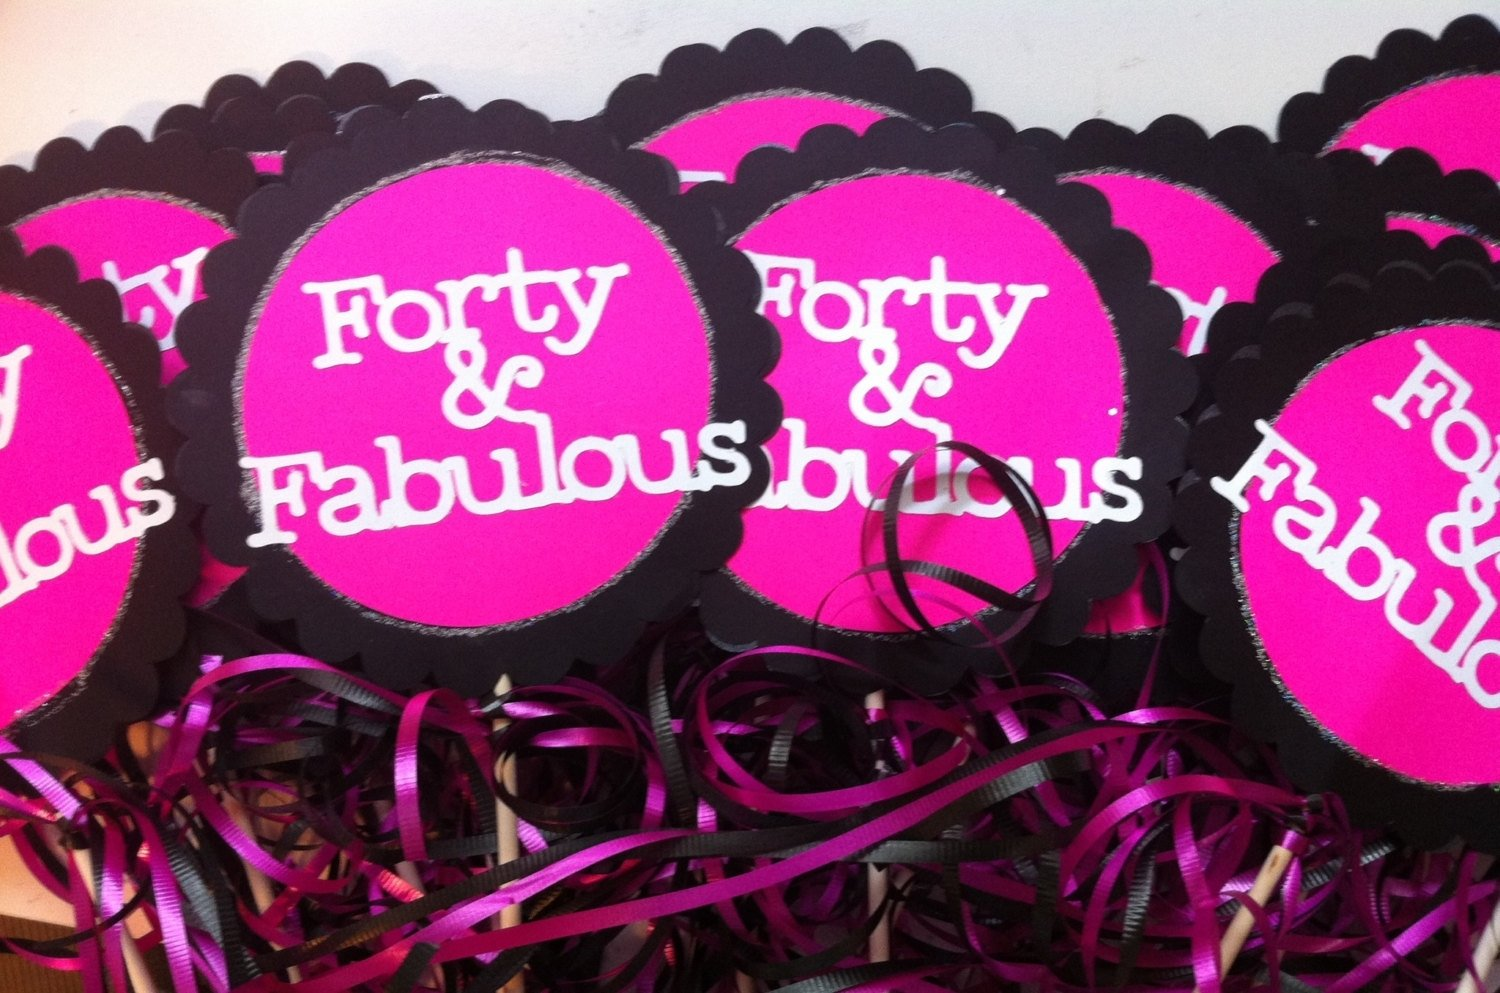 10 Most Popular Party Ideas For 40Th Birthday 7 fabulous 40th birthday party ideas for women birthday inspire 5 2021